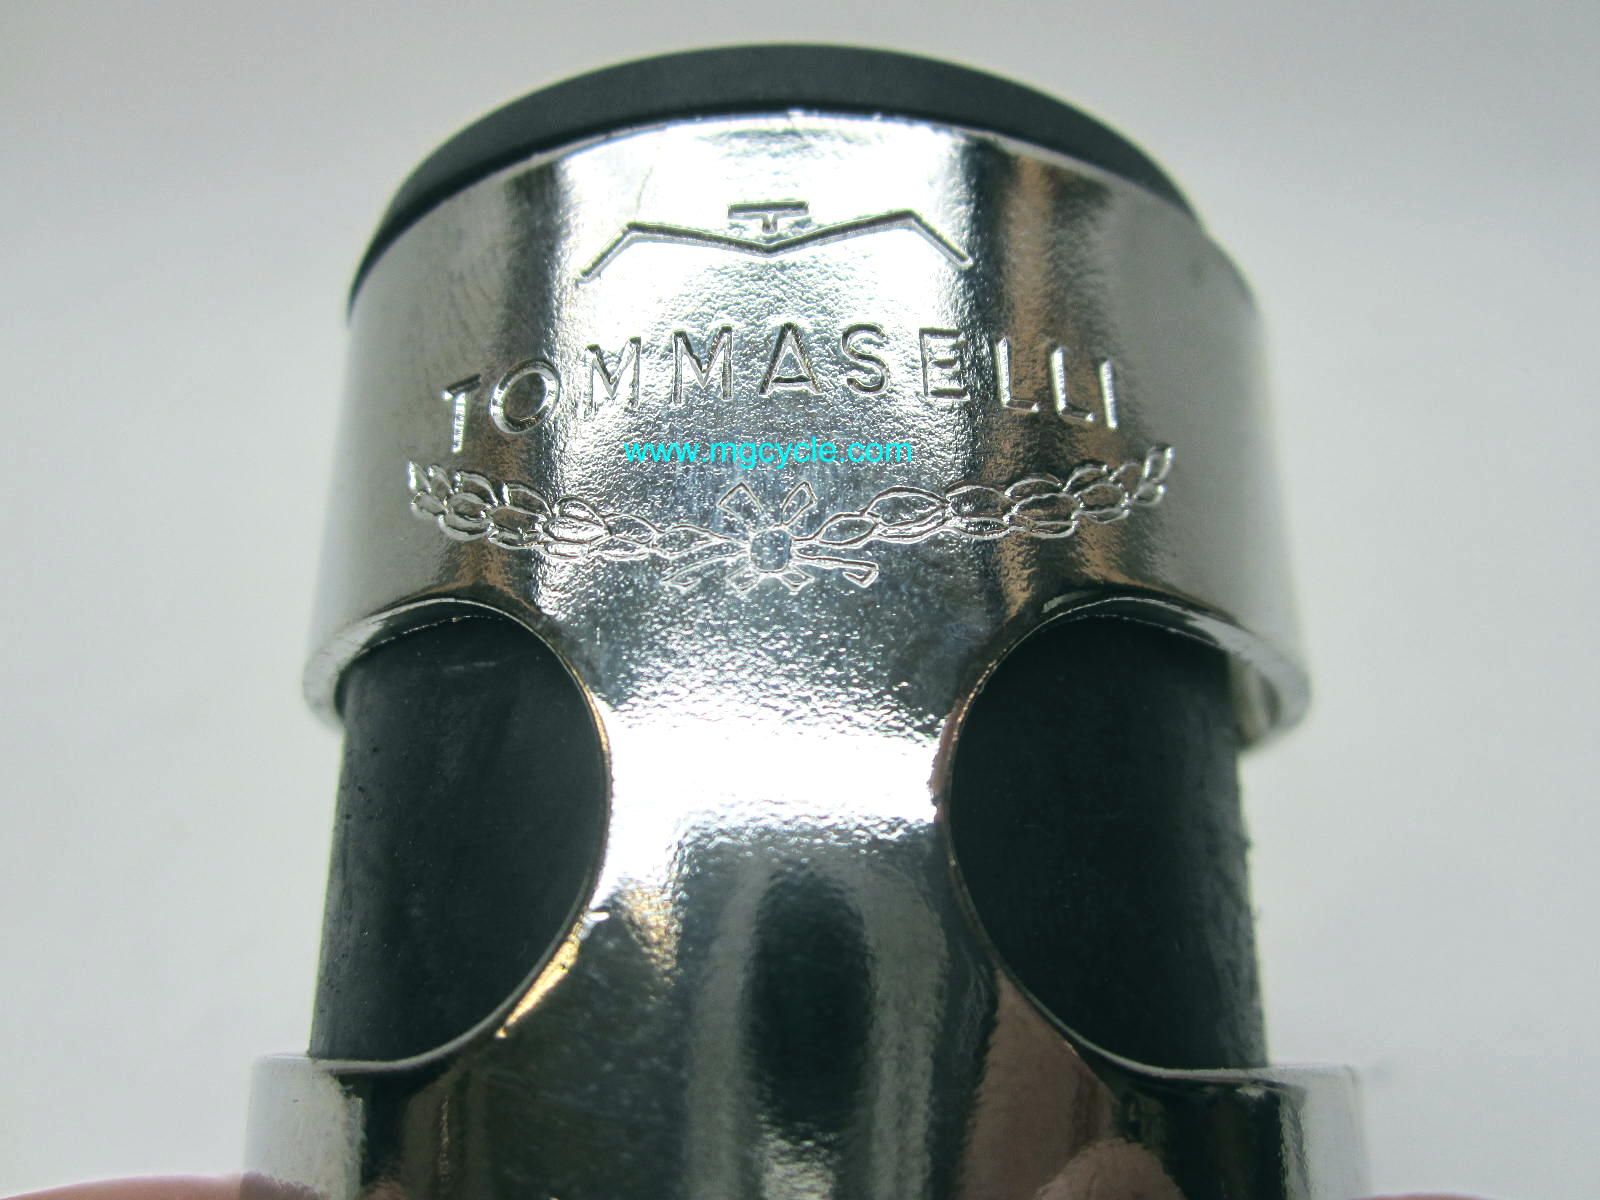 Tommaselli headlight mounting ears for 32mm fork, V50